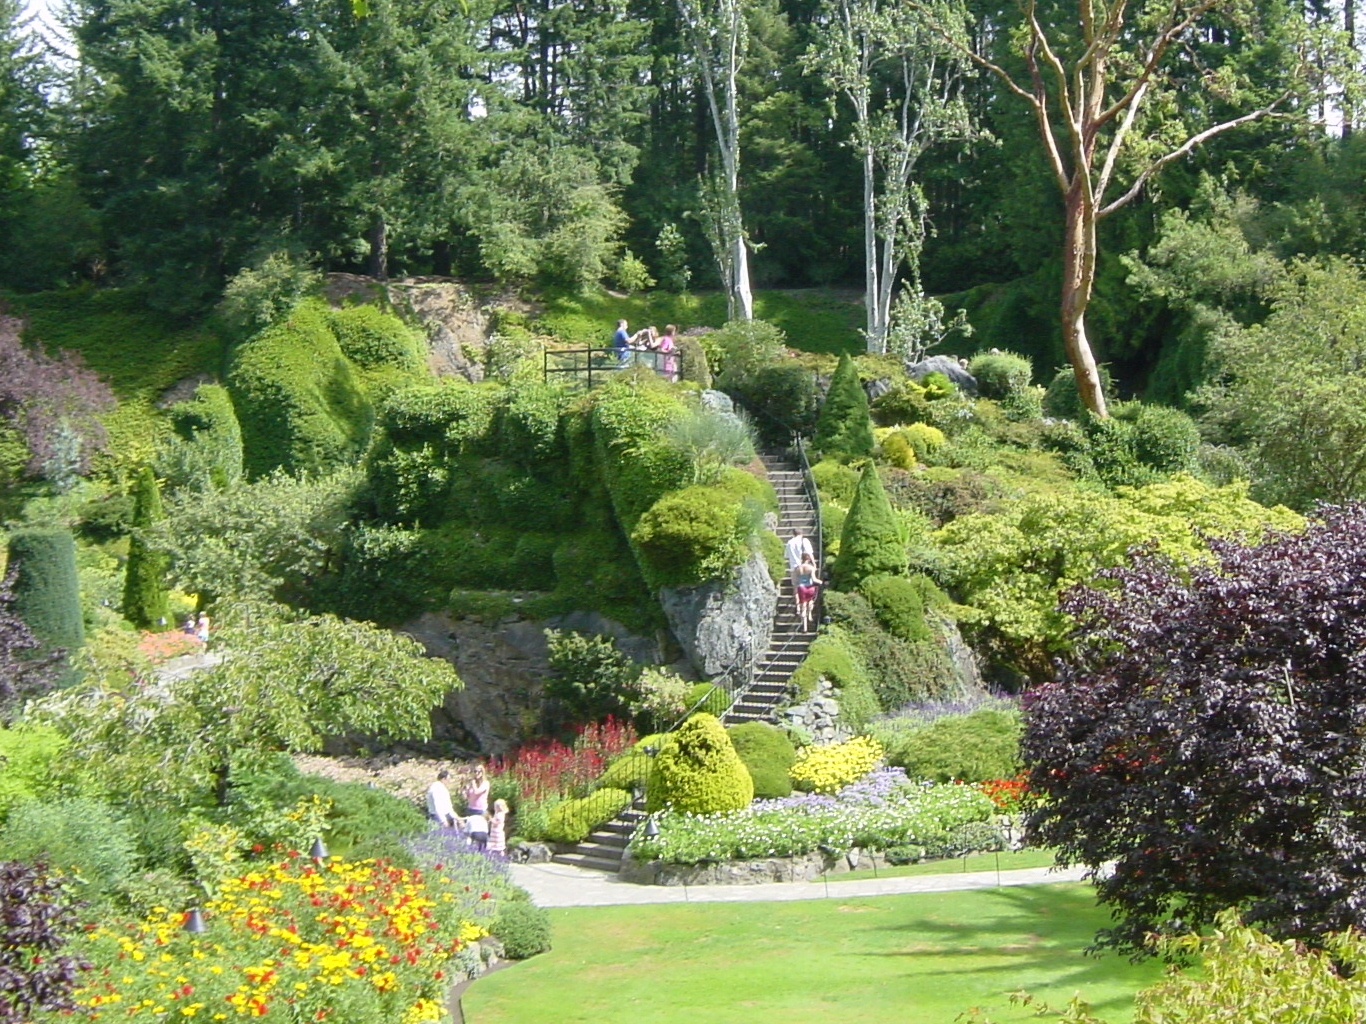 Flowers and trees at Butchart Garden